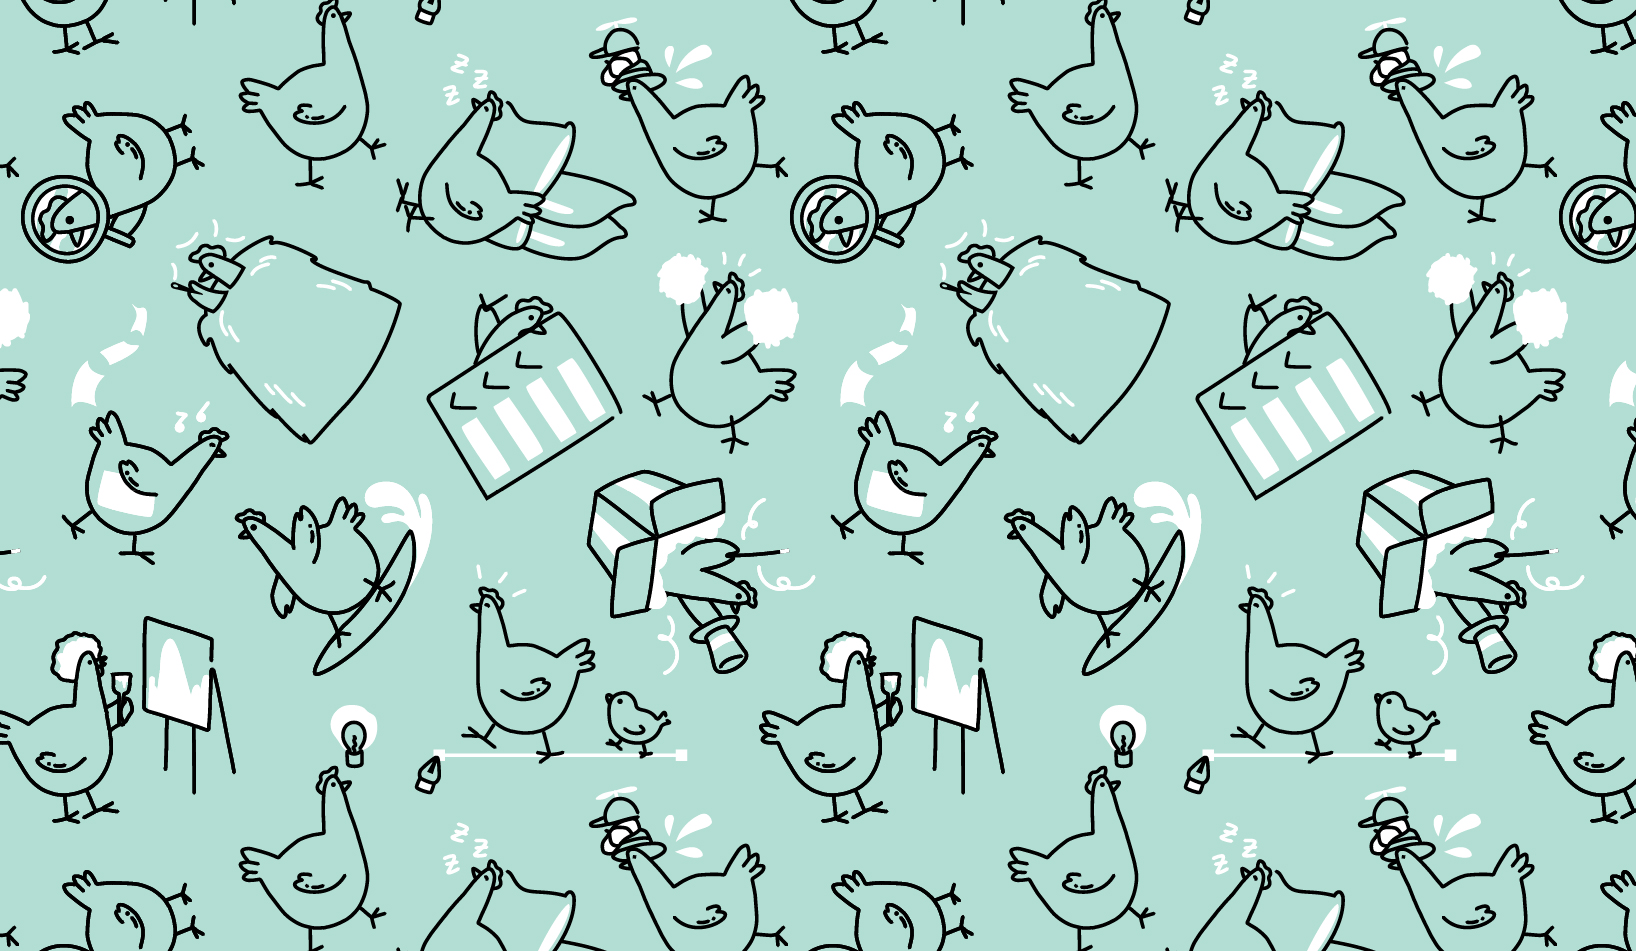 branded chicken illustration pattern